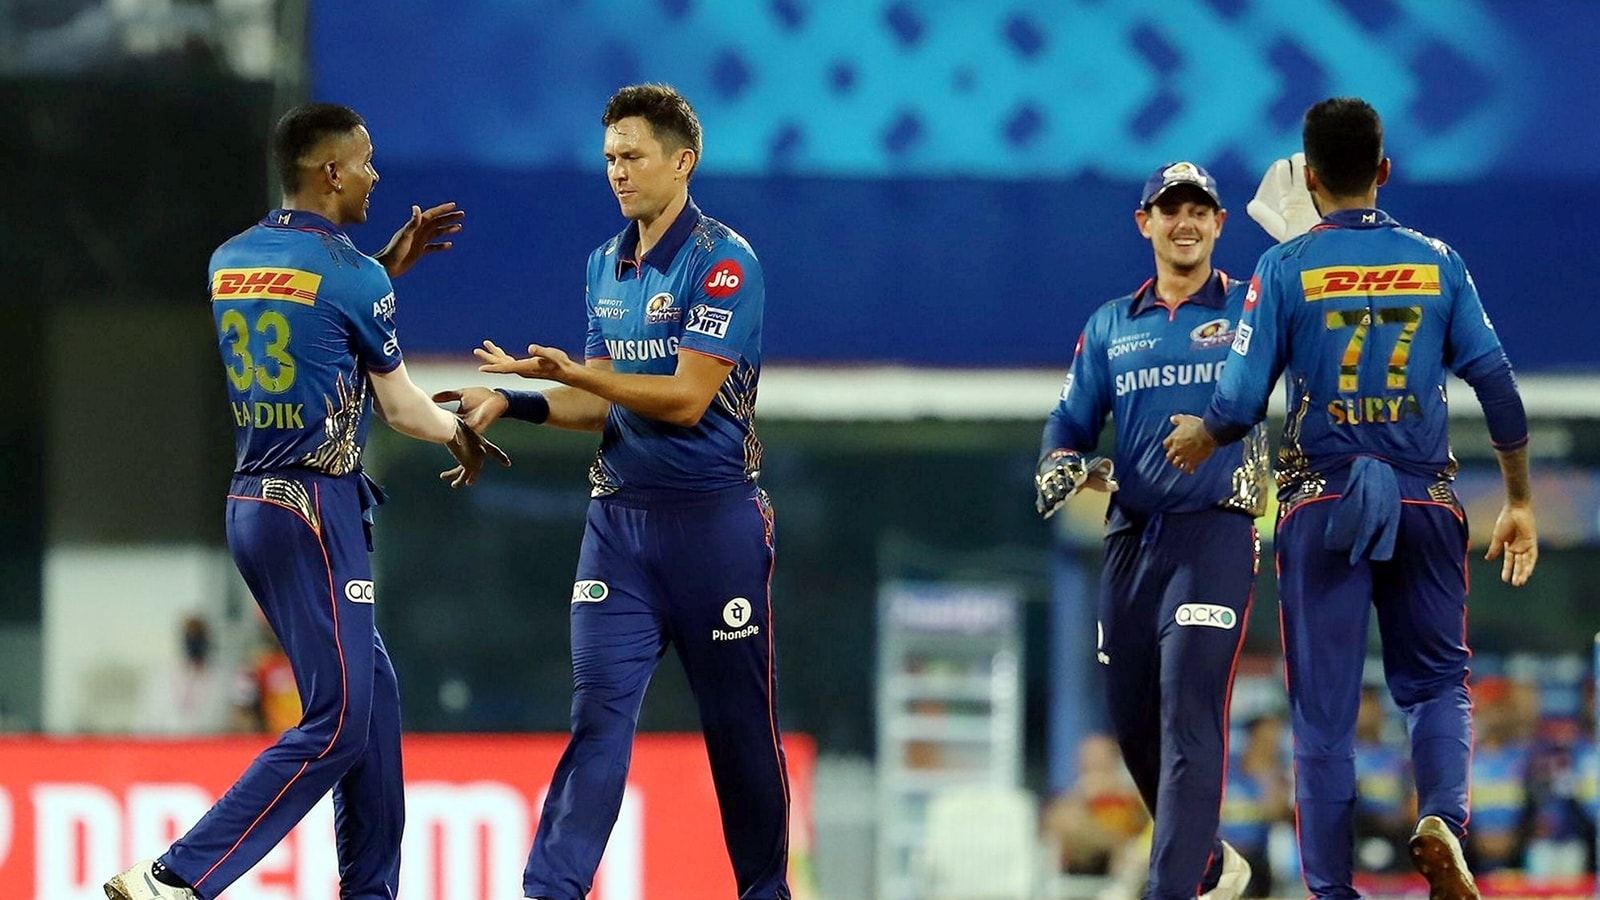 IPL 2021: Trent Boult said that if he gets a chance, he will go to play in the UAE